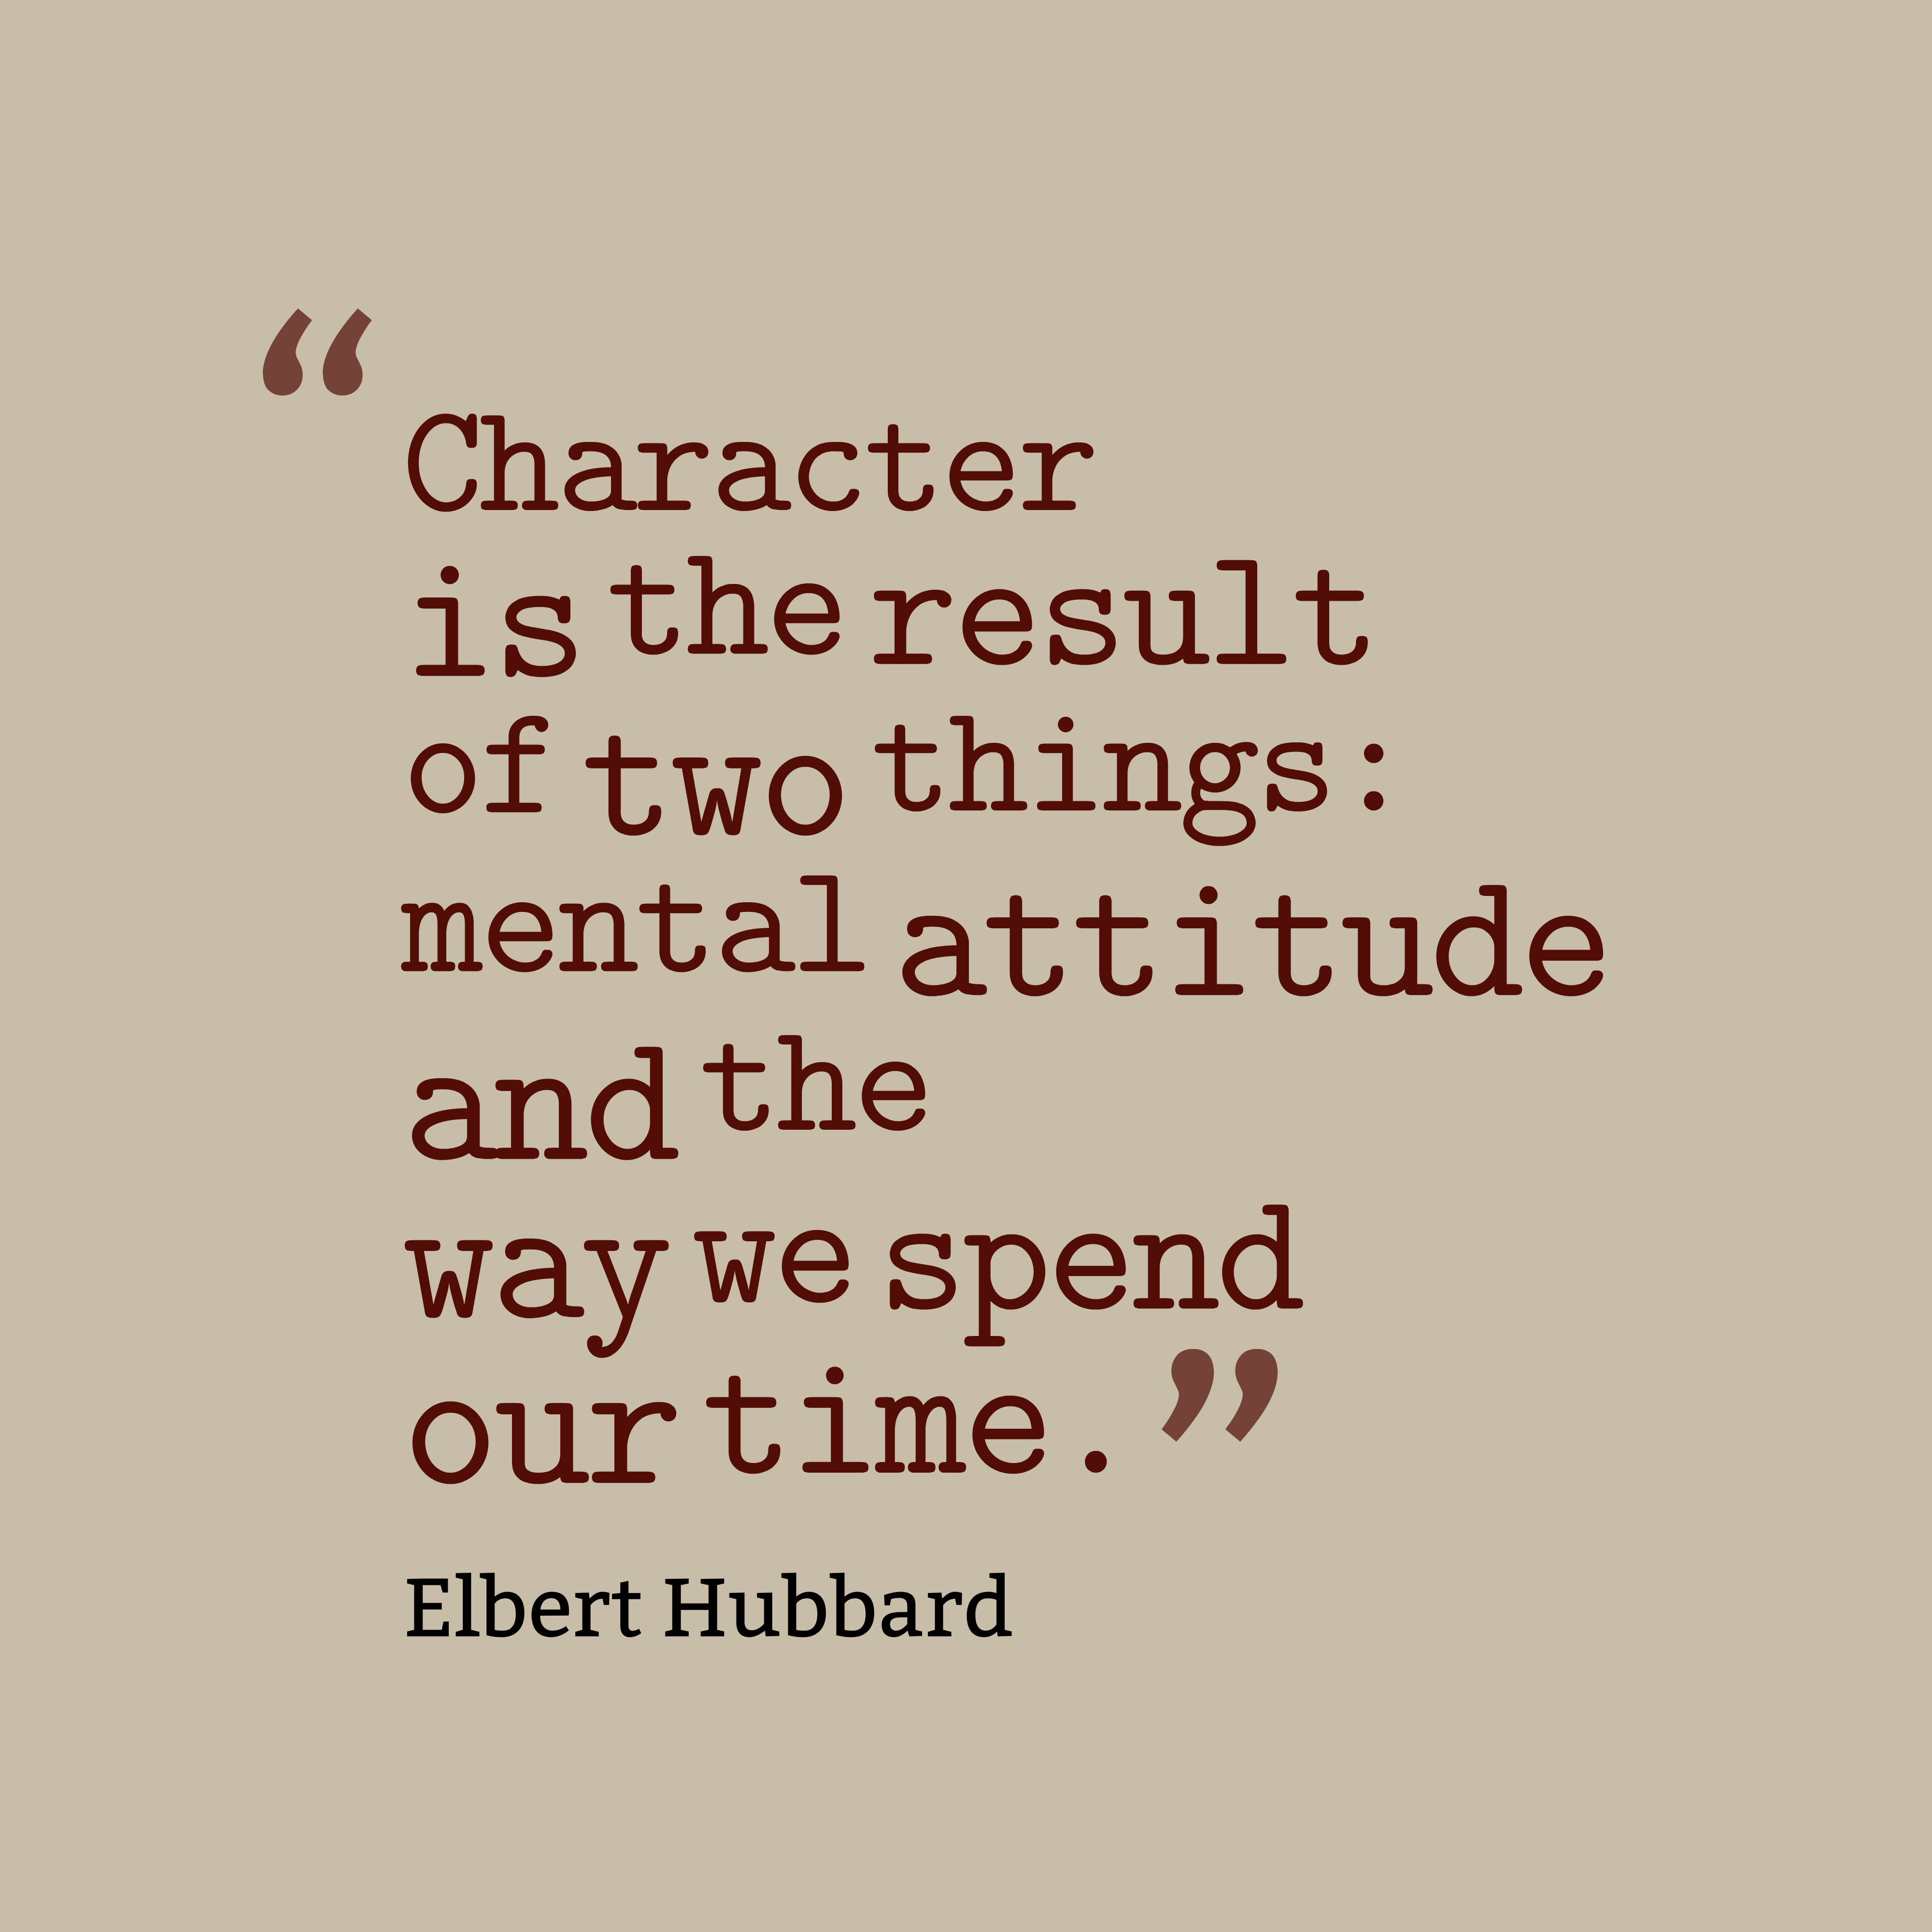 Quotes About Character 45 Best Elbert Hubbard Quotes Images